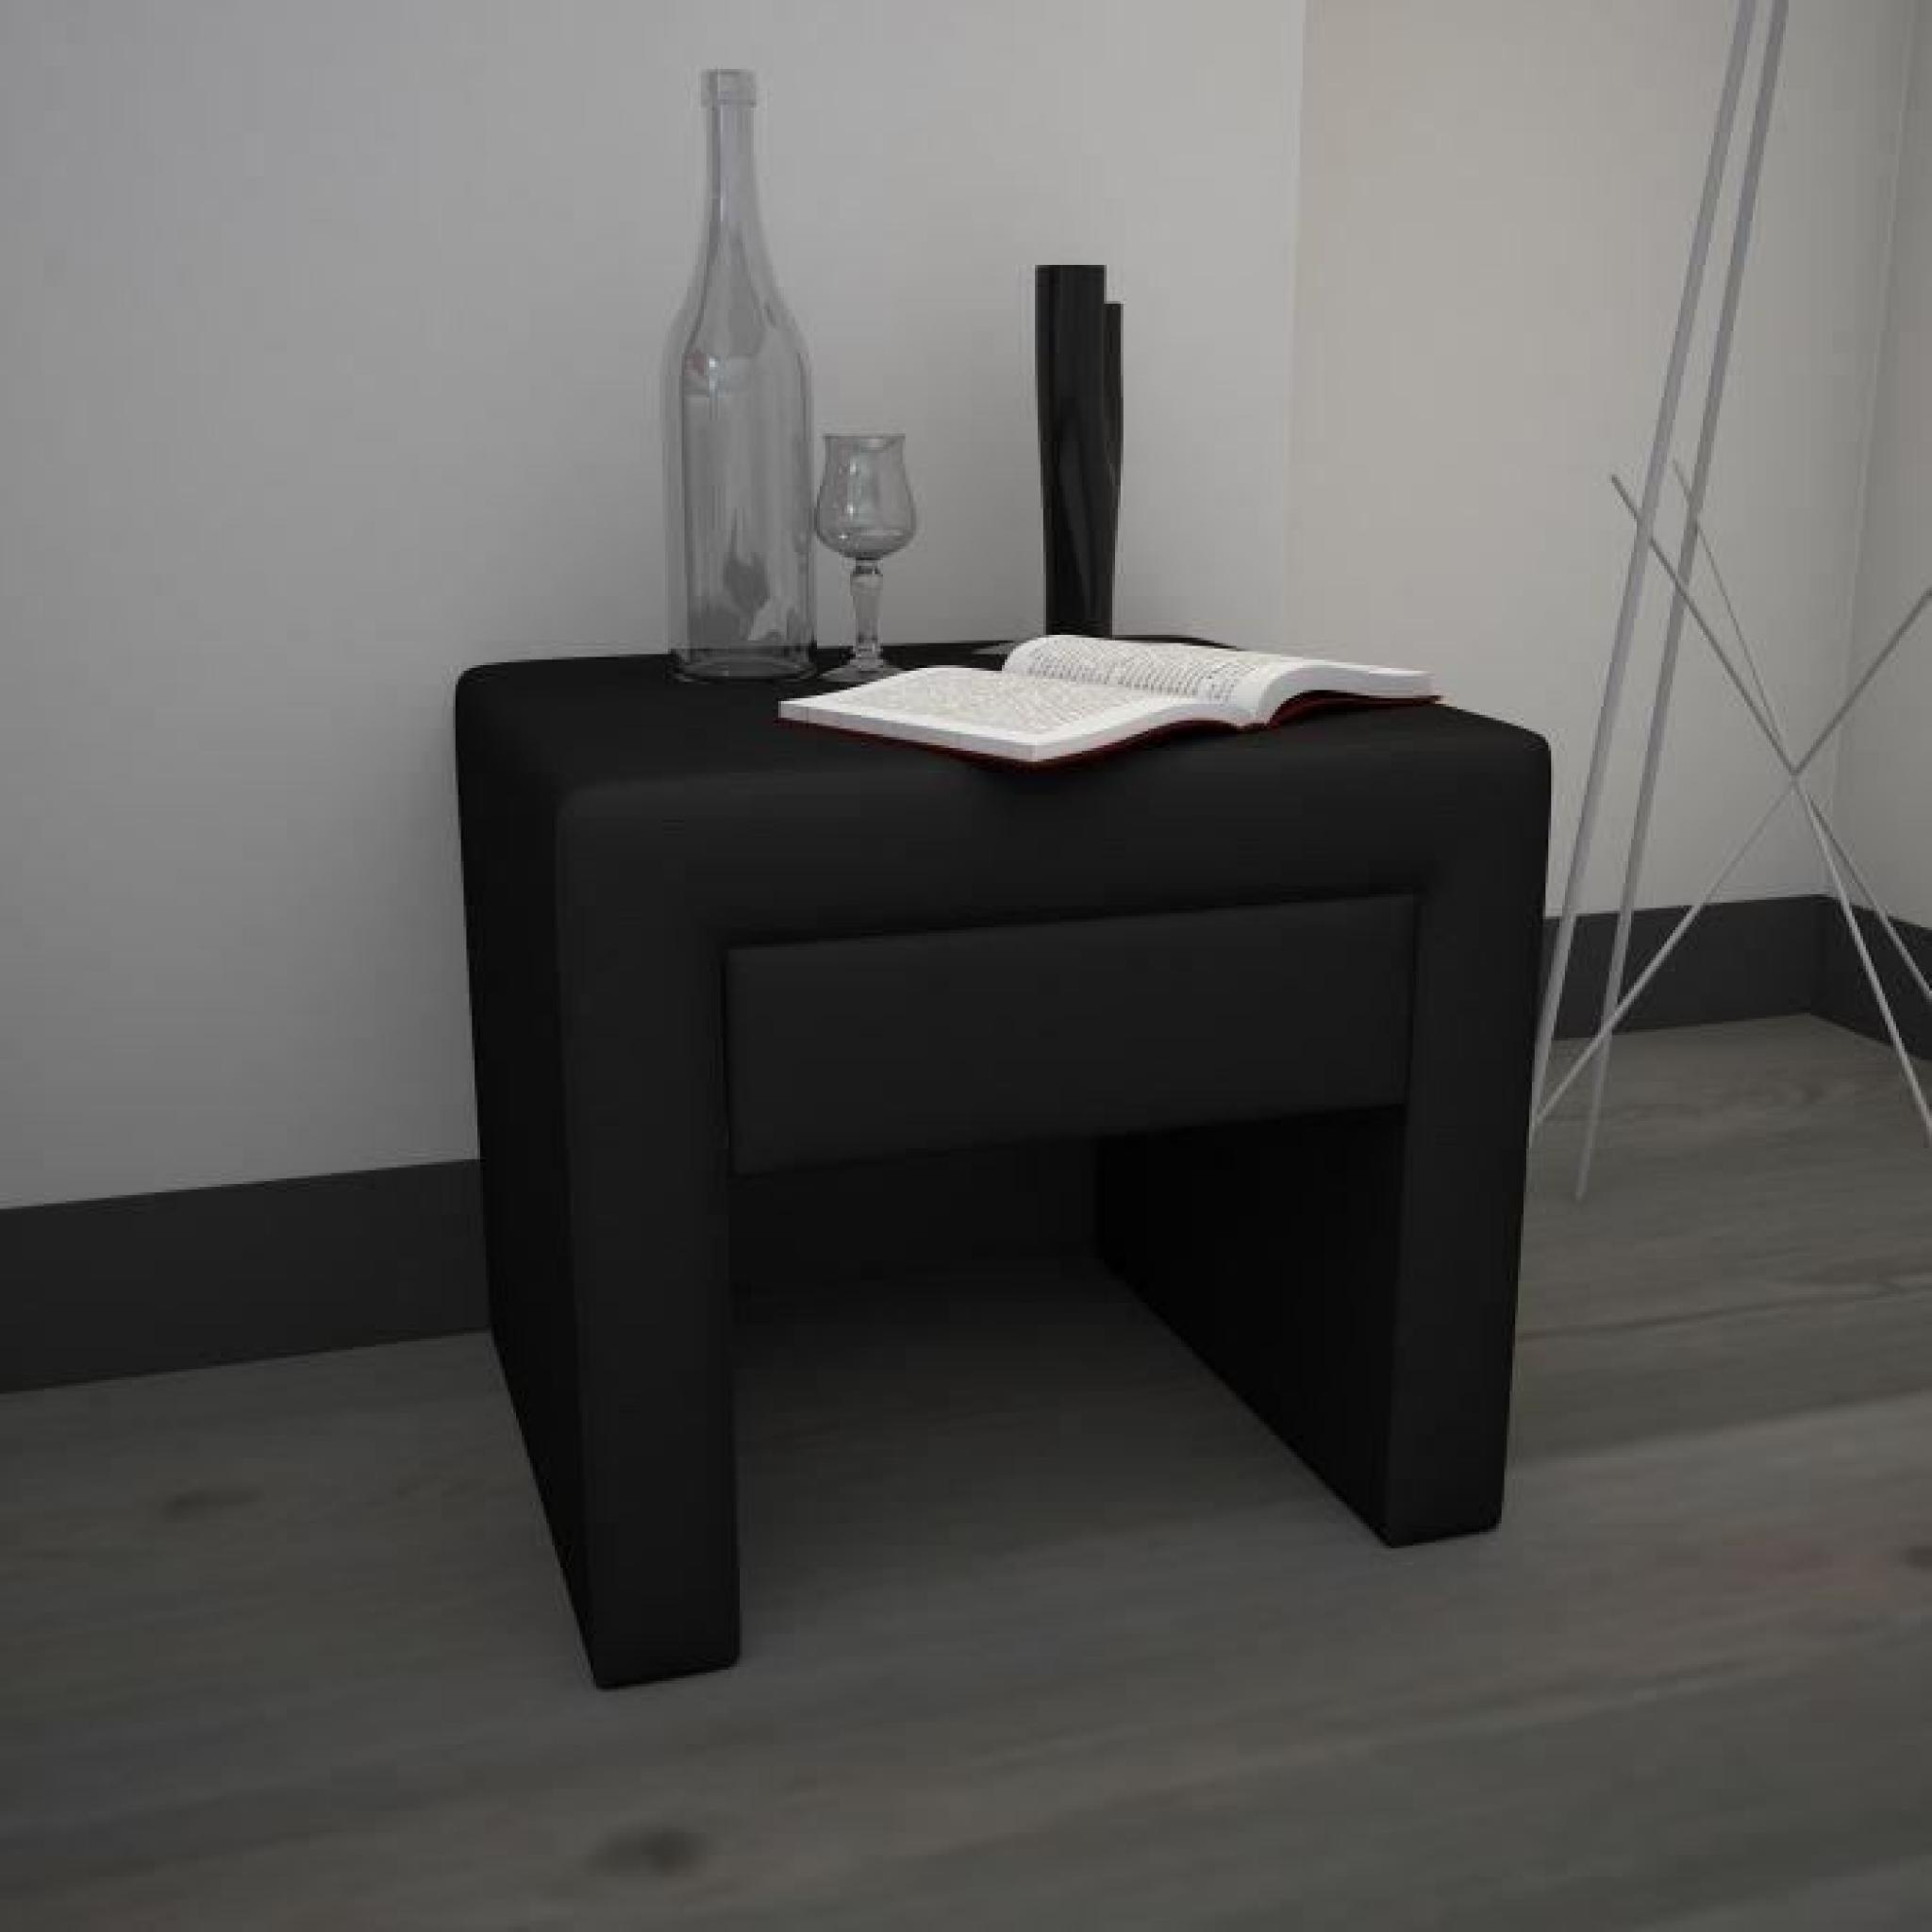 finlandek chevet pass tiroir simili noir achat vente table de chevet pas cher couleur et. Black Bedroom Furniture Sets. Home Design Ideas